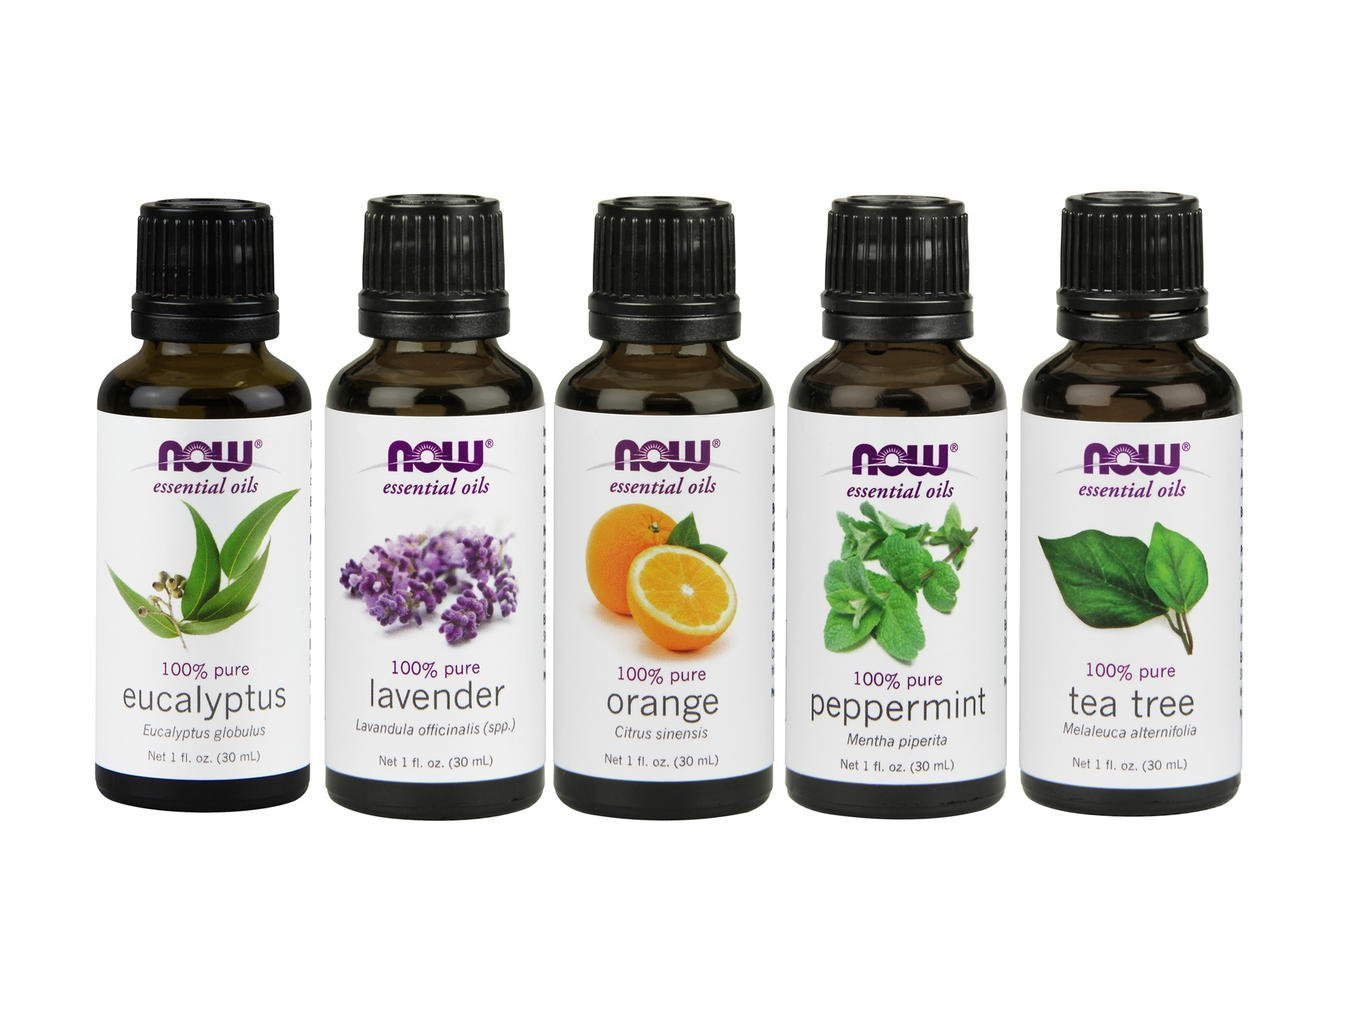 Now Foods Essential Oils 5-Pack Variety Sampler - 1oz each by NOW Foods